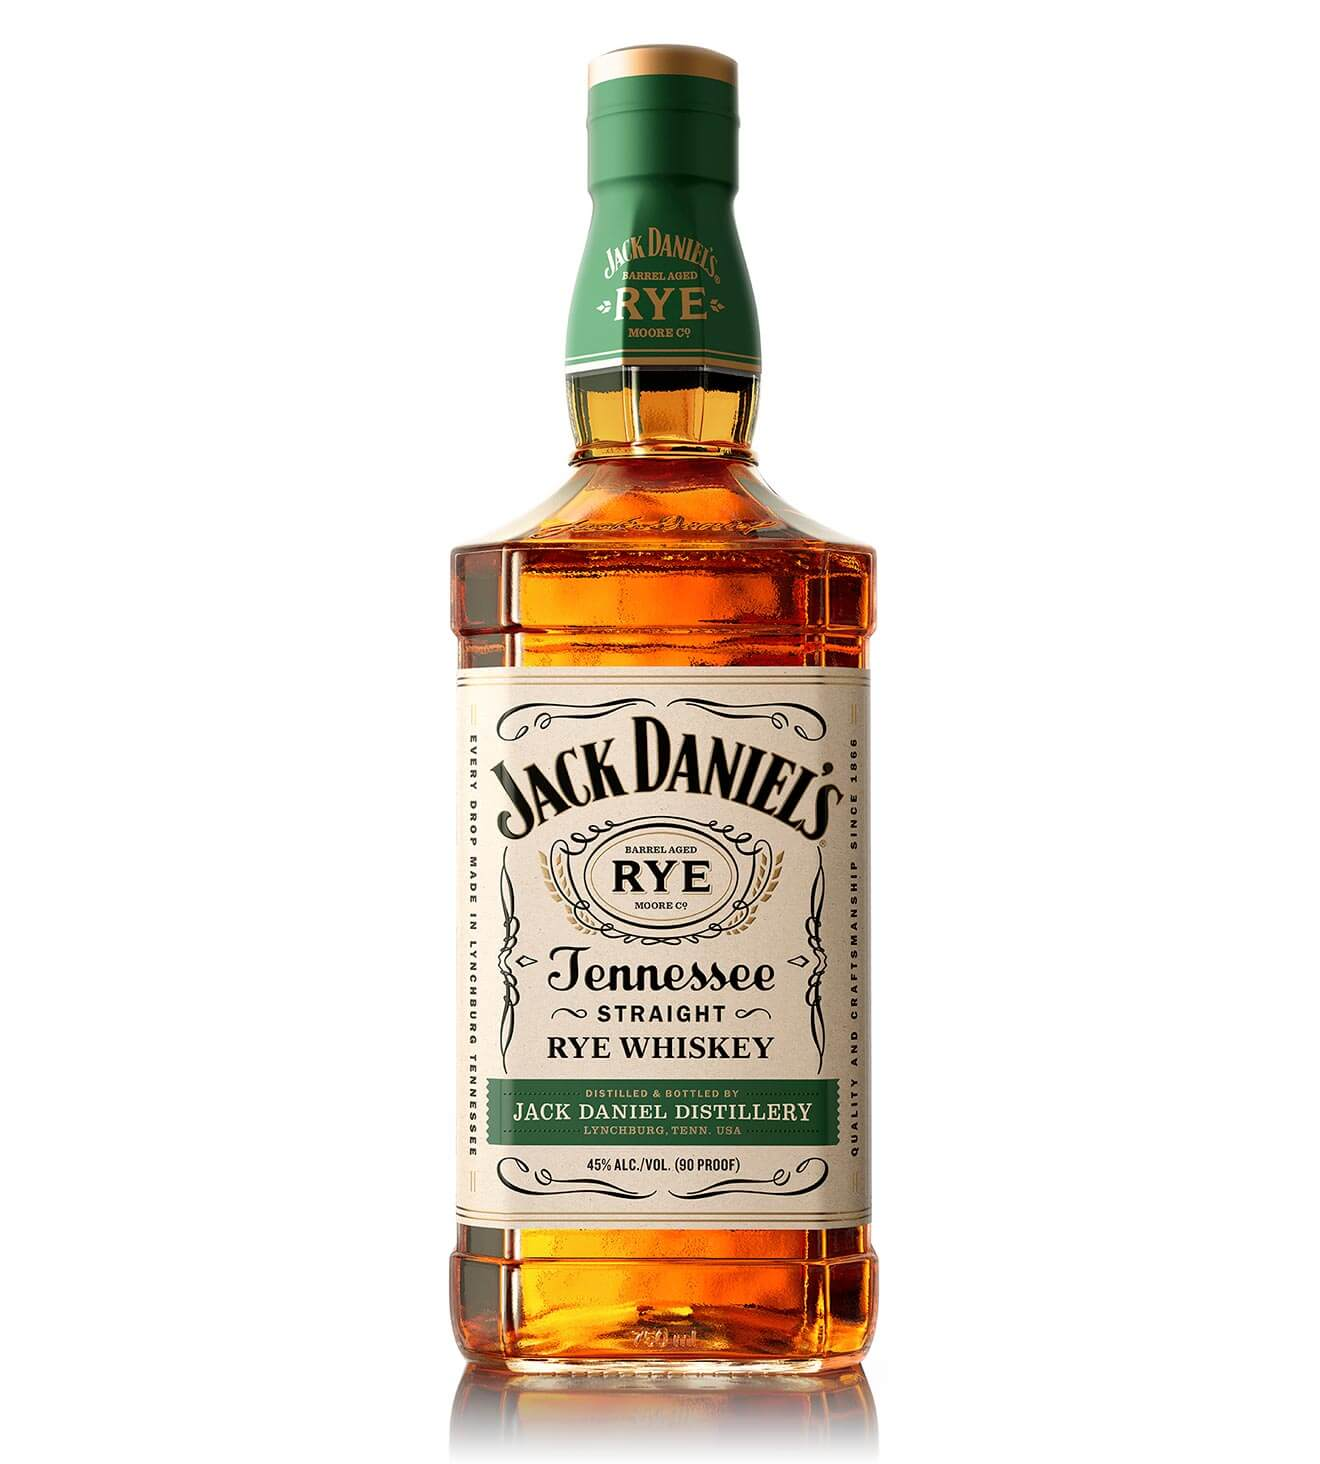 Jack Daniel's Tennessee Rye. bottle